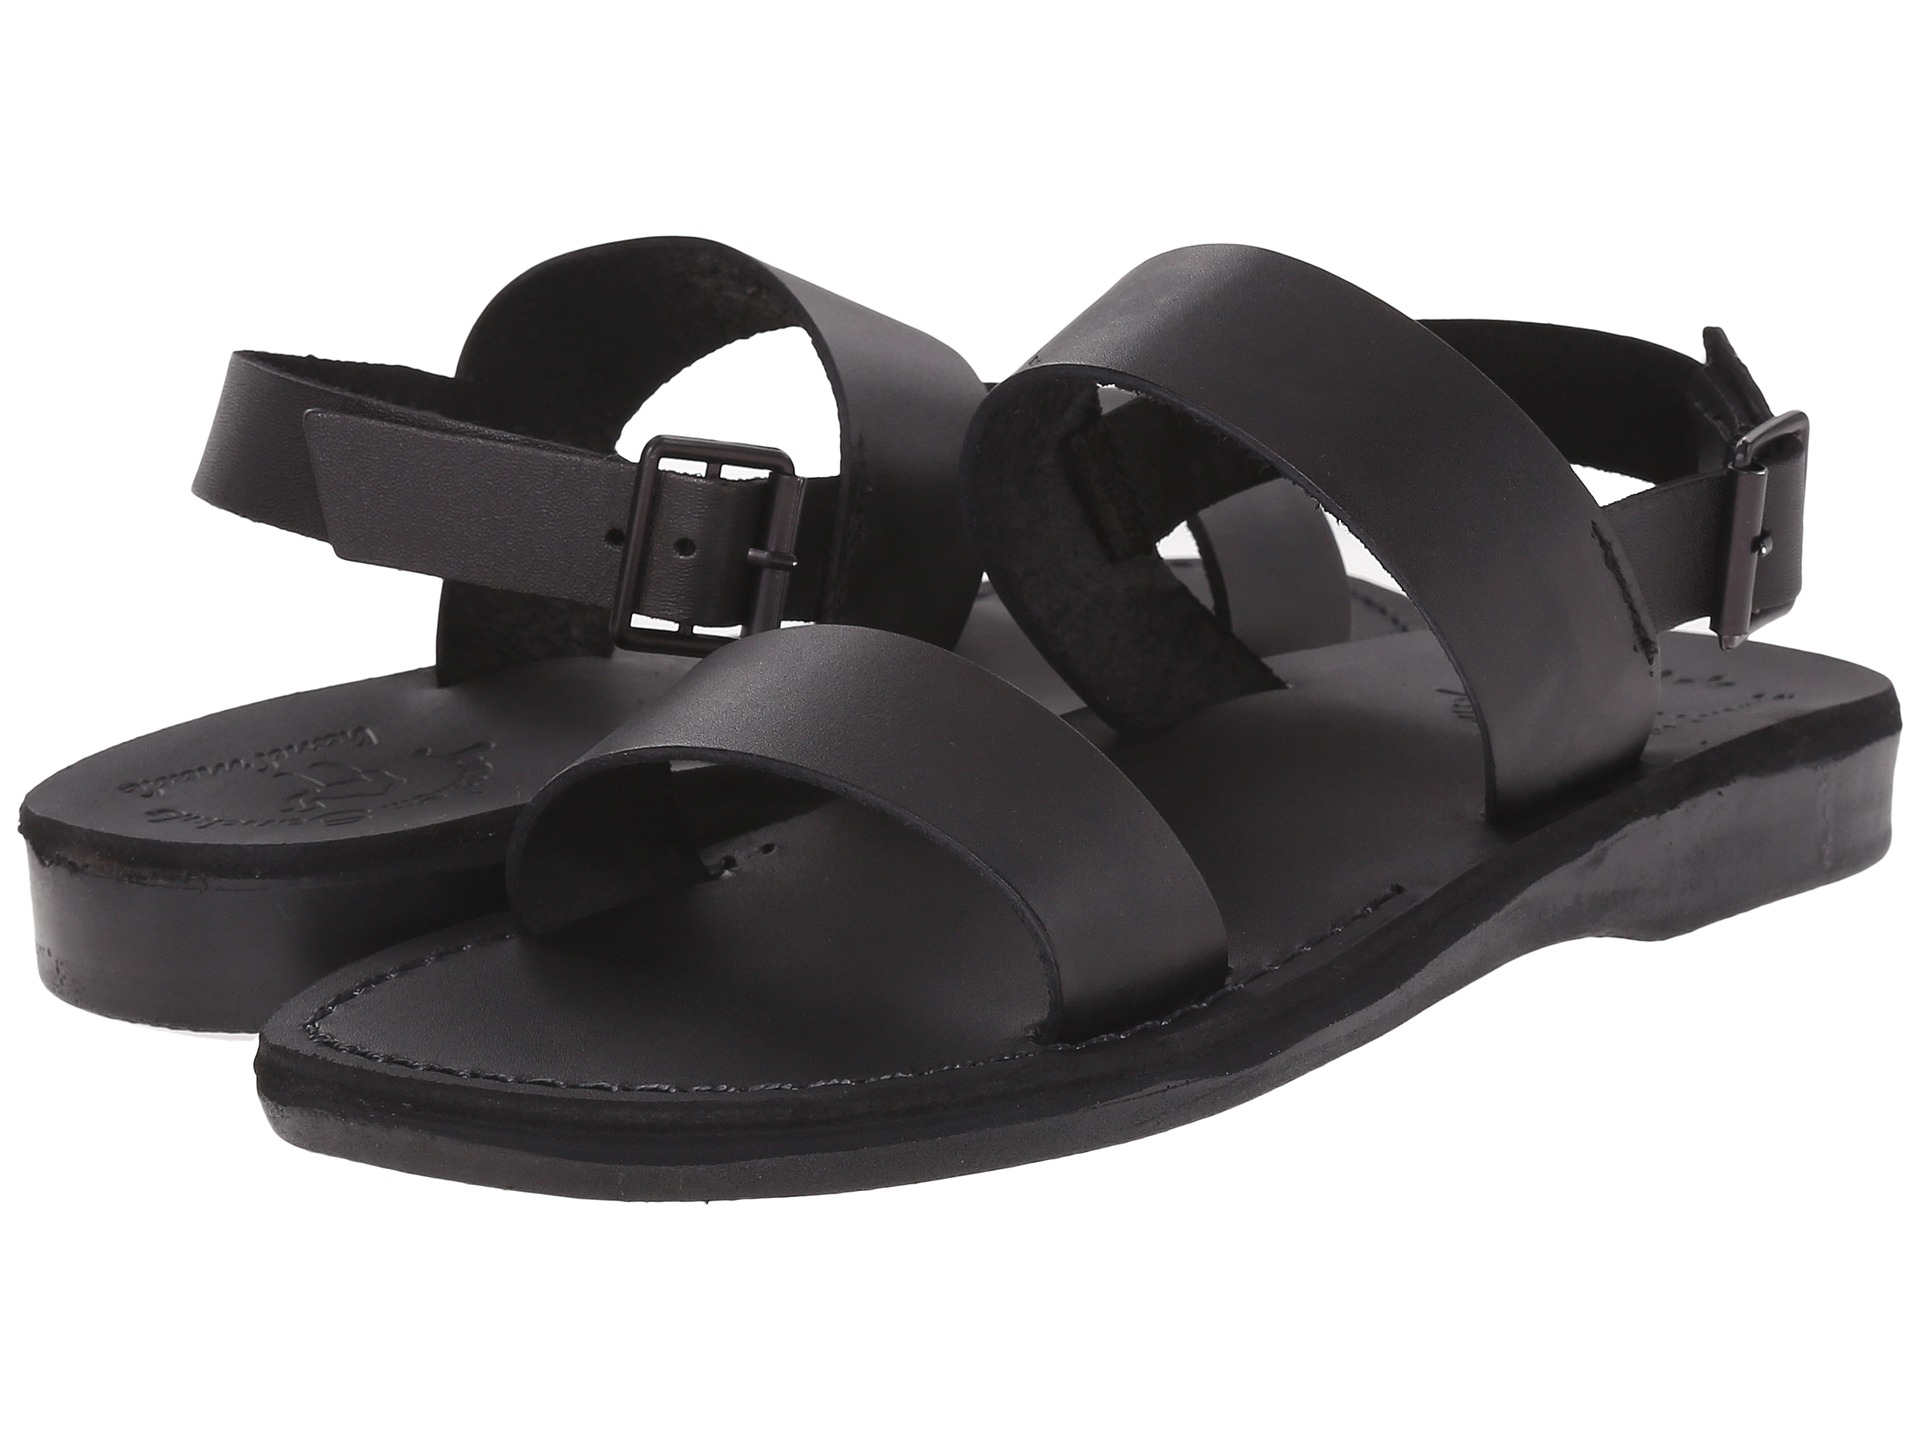 Sandals shoes comfortable - View More Like This Jerusalem Sandals Golan Womens